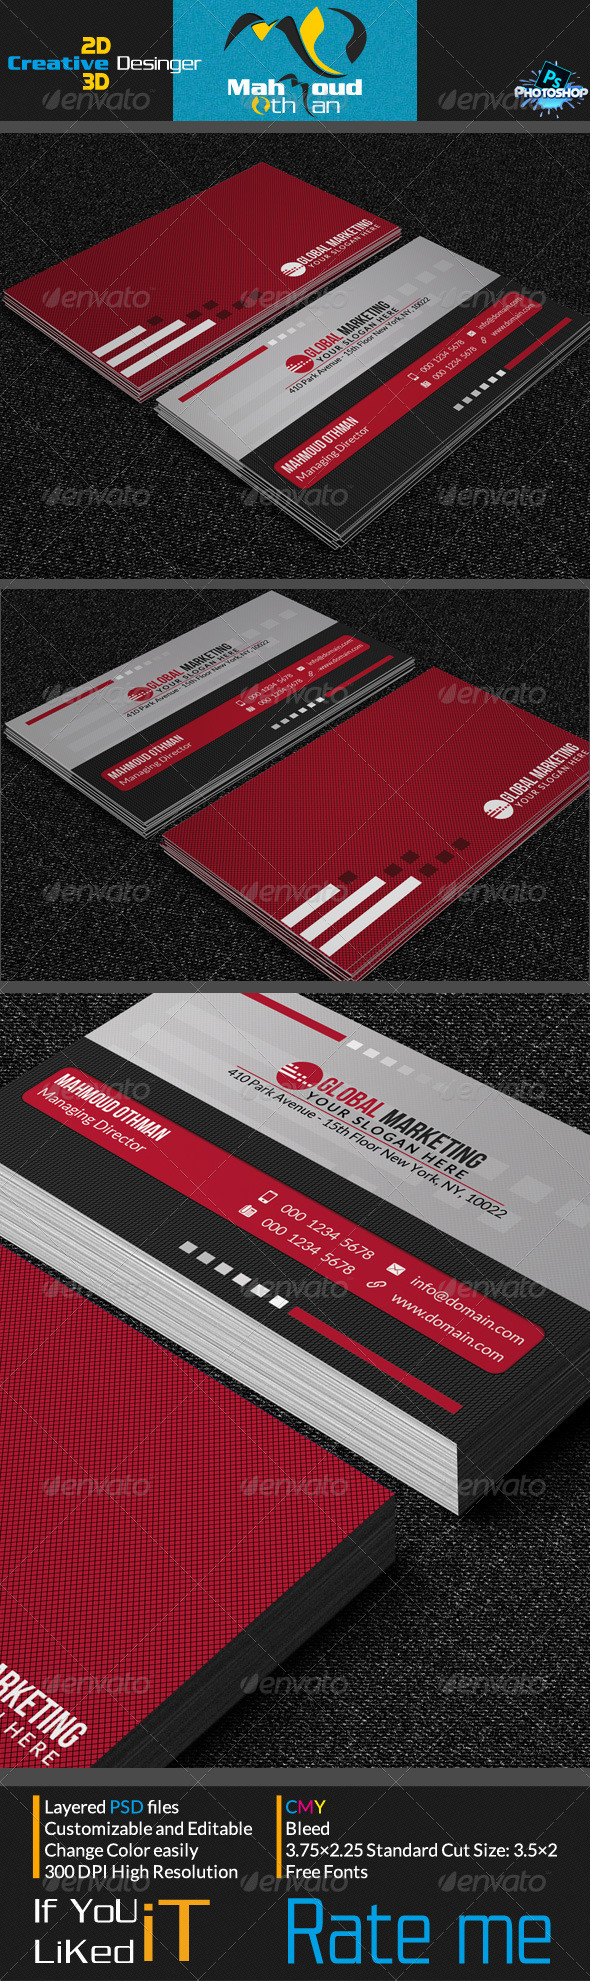 GraphicRiver Corportae Business Card V05 7244799